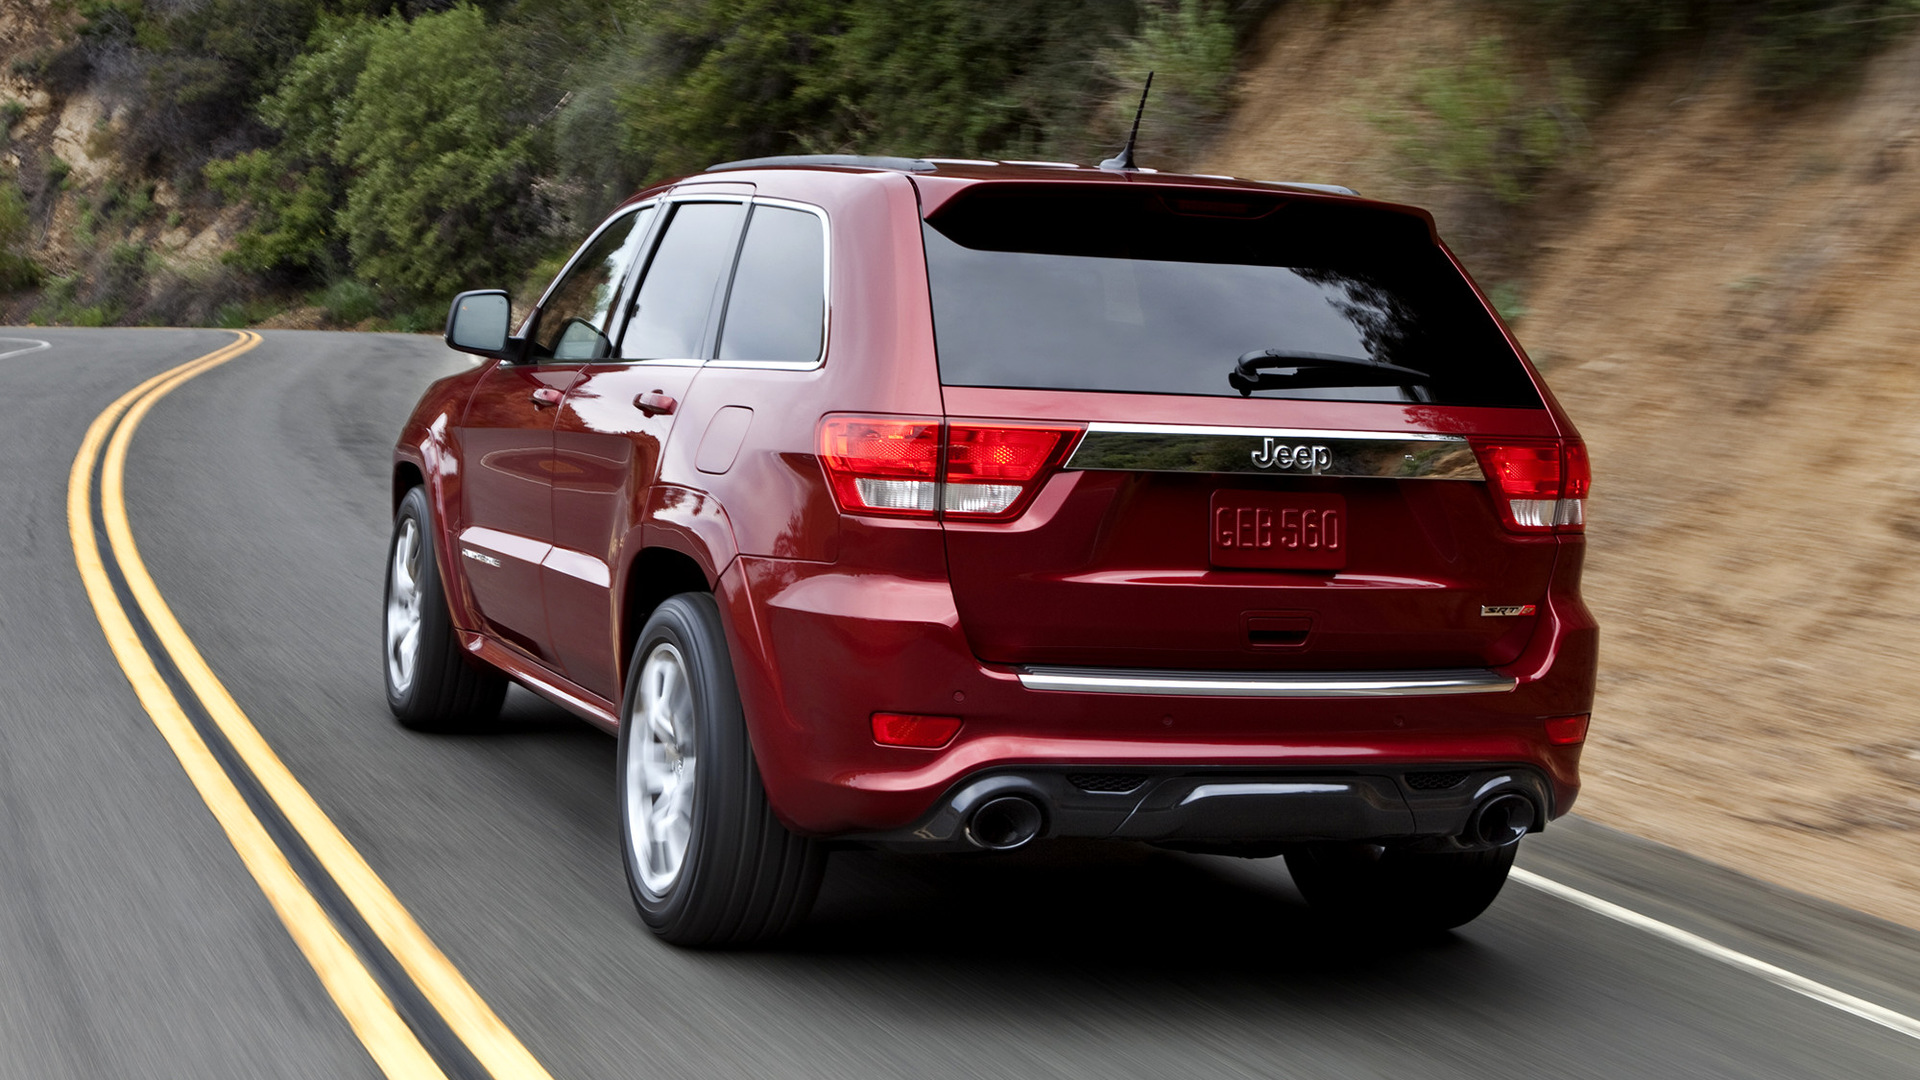 2010 Jeep Grand Cherokee Srt8 >> 2011 Jeep Grand Cherokee SRT8 - Wallpapers and HD Images | Car Pixel